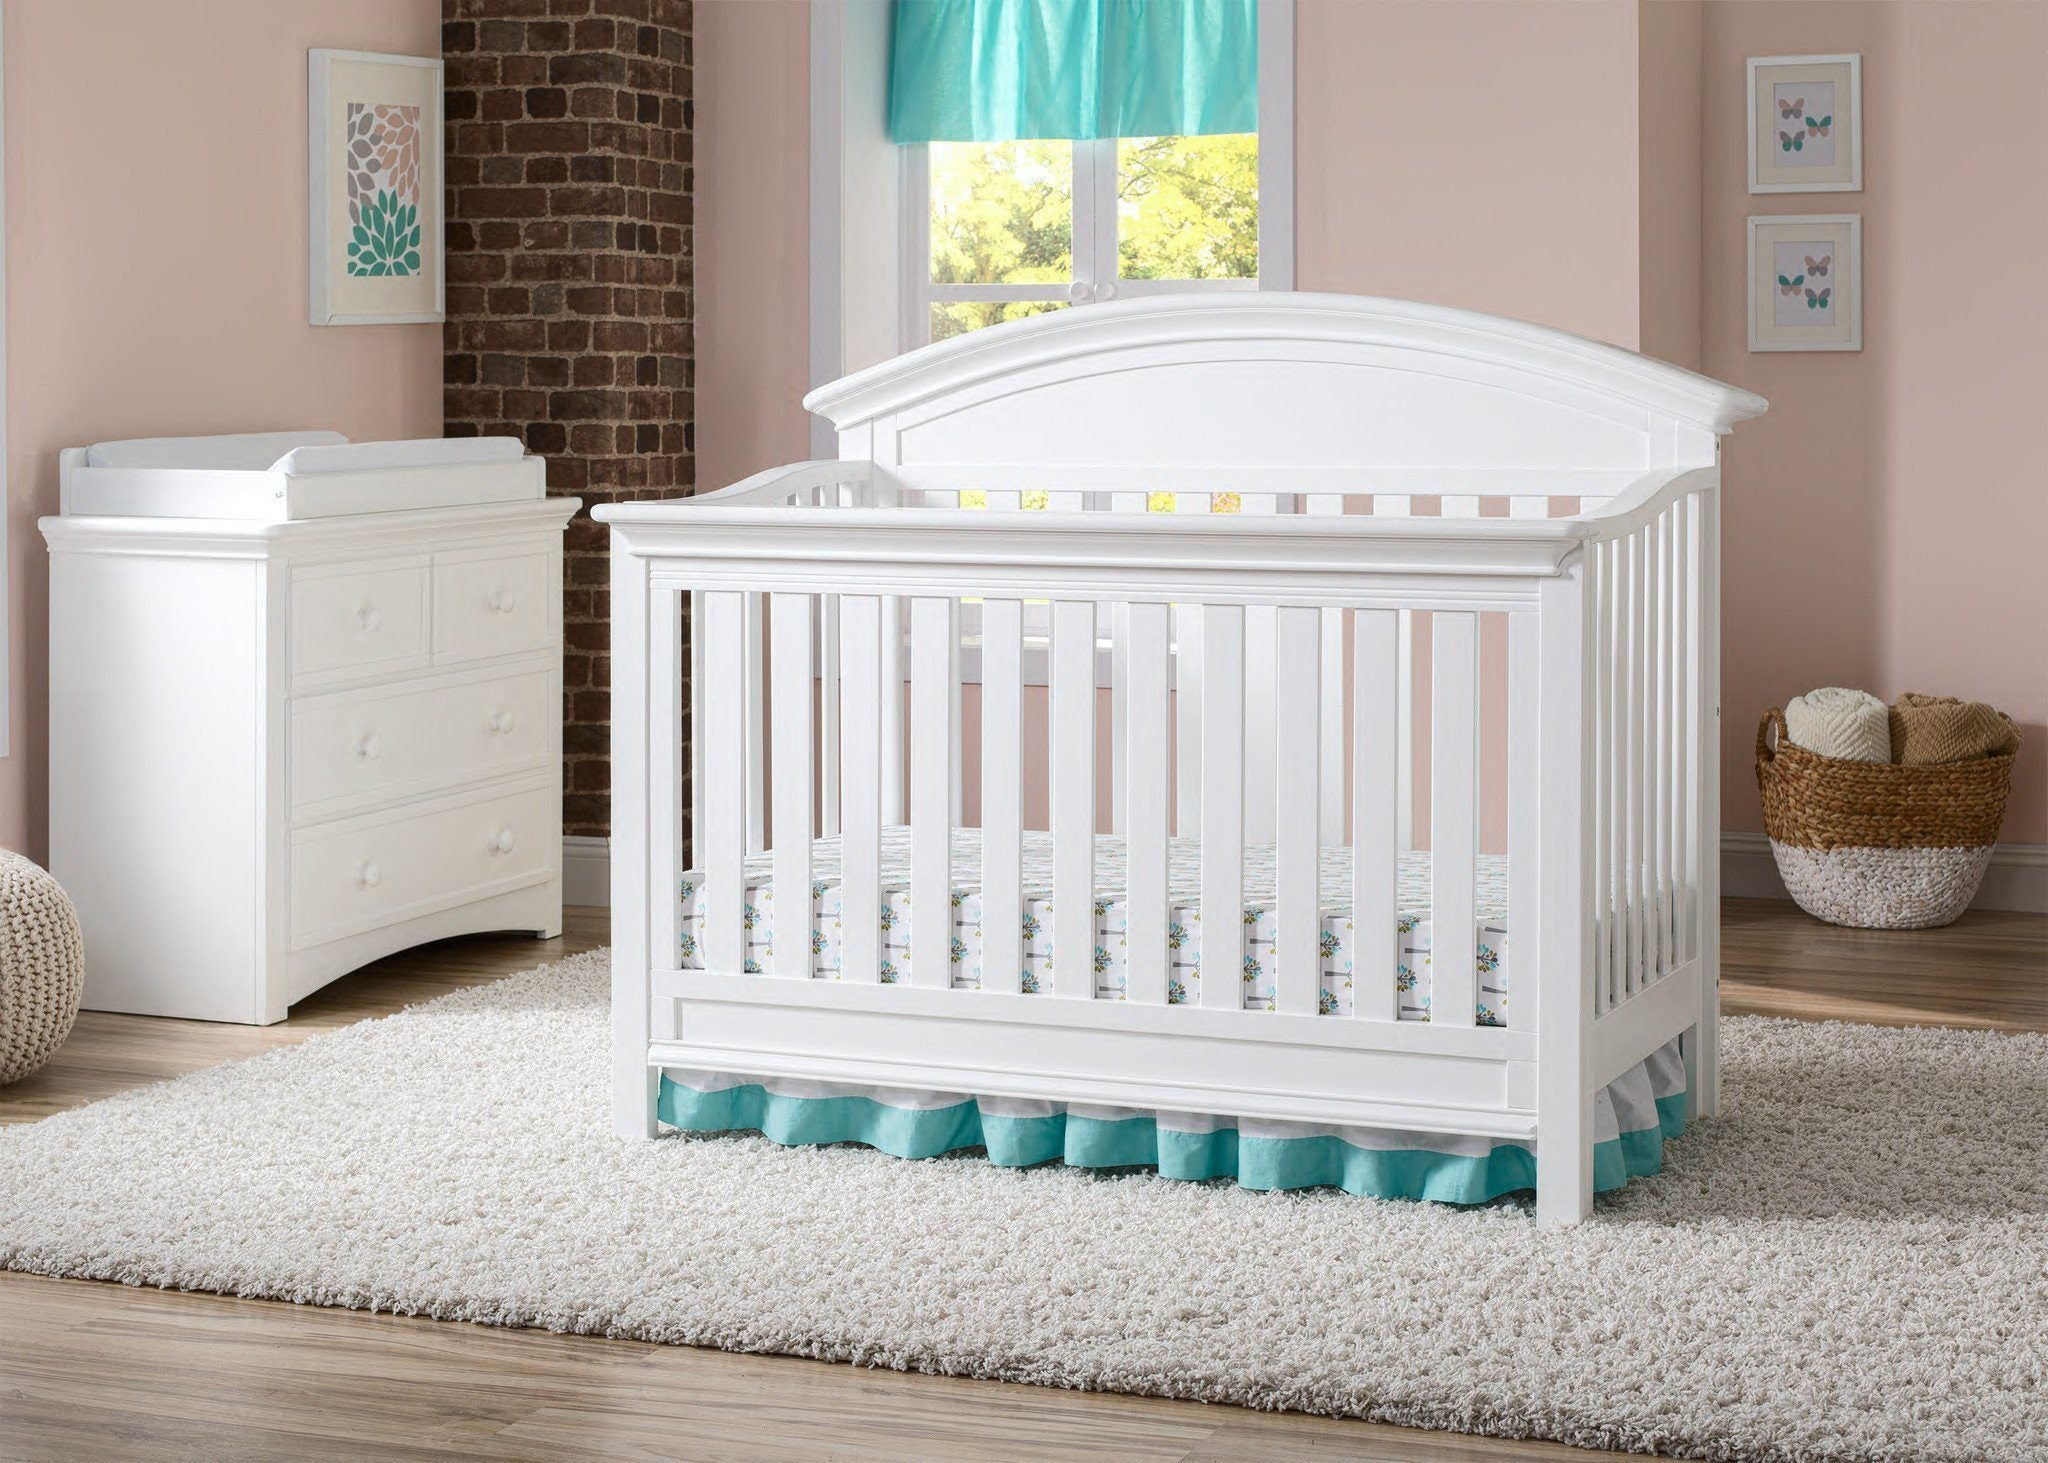 Serta Bianca (130) Aberdeen 4-in-1 Crib, Crib Conversion in Setting 2 b1b